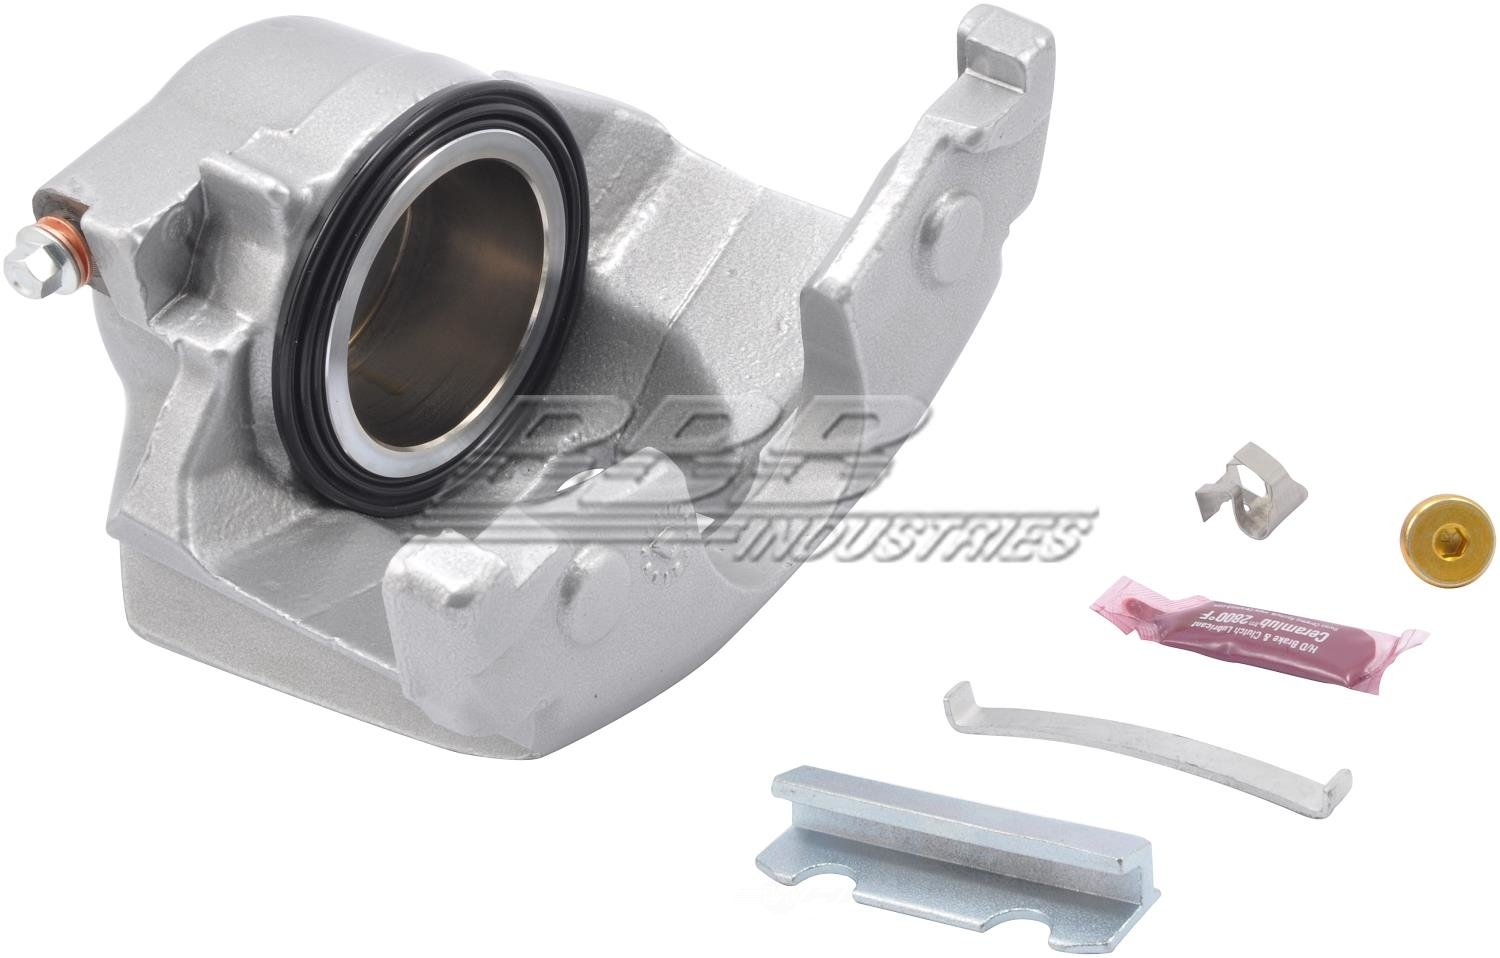 BBB INDUSTRIES - Reman Caliper W/installation Hardware - BBA 97-17632A